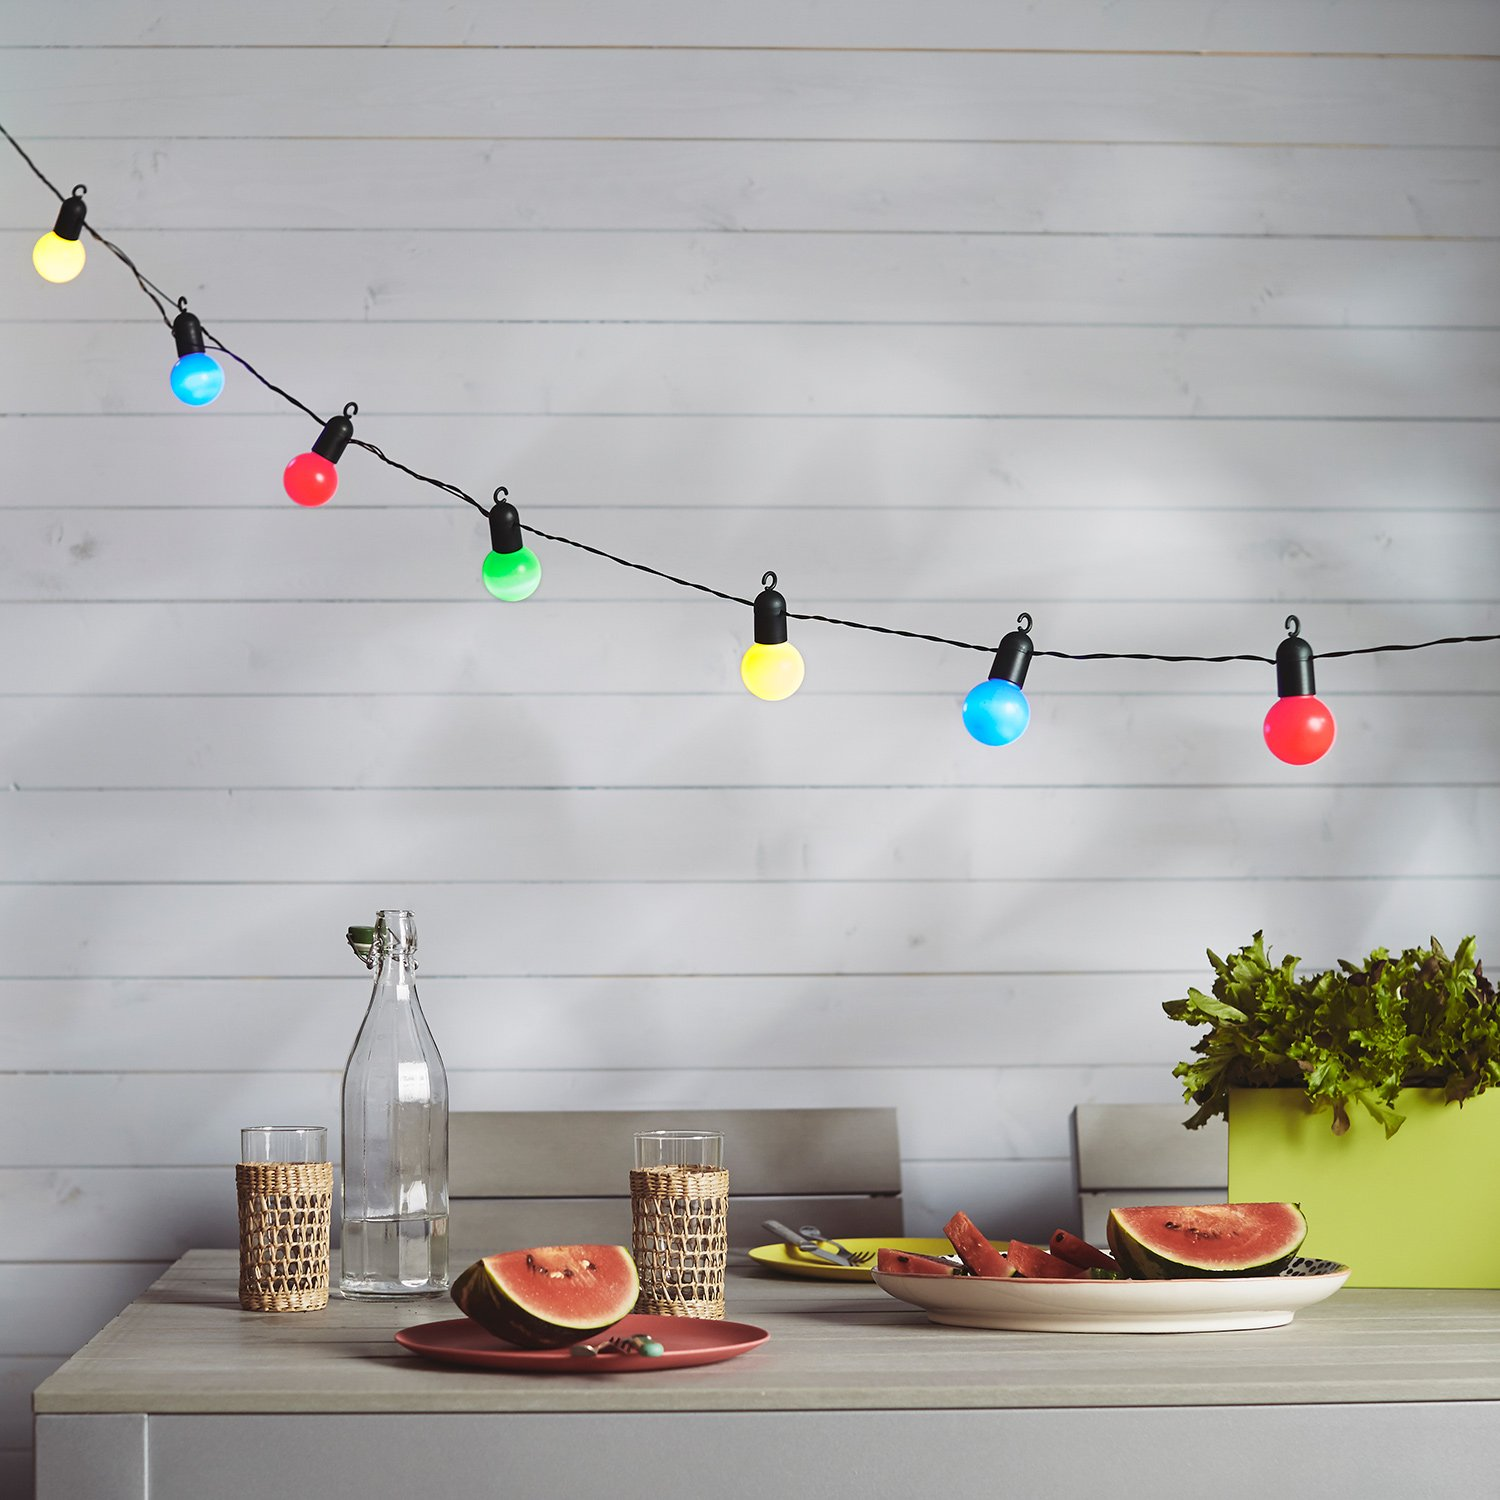 20 multi coloured led festoon party lights for indoor outdoor use by 20 multi coloured led festoon party lights for indoor outdoor use by lights4fun amazon kitchen home aloadofball Choice Image